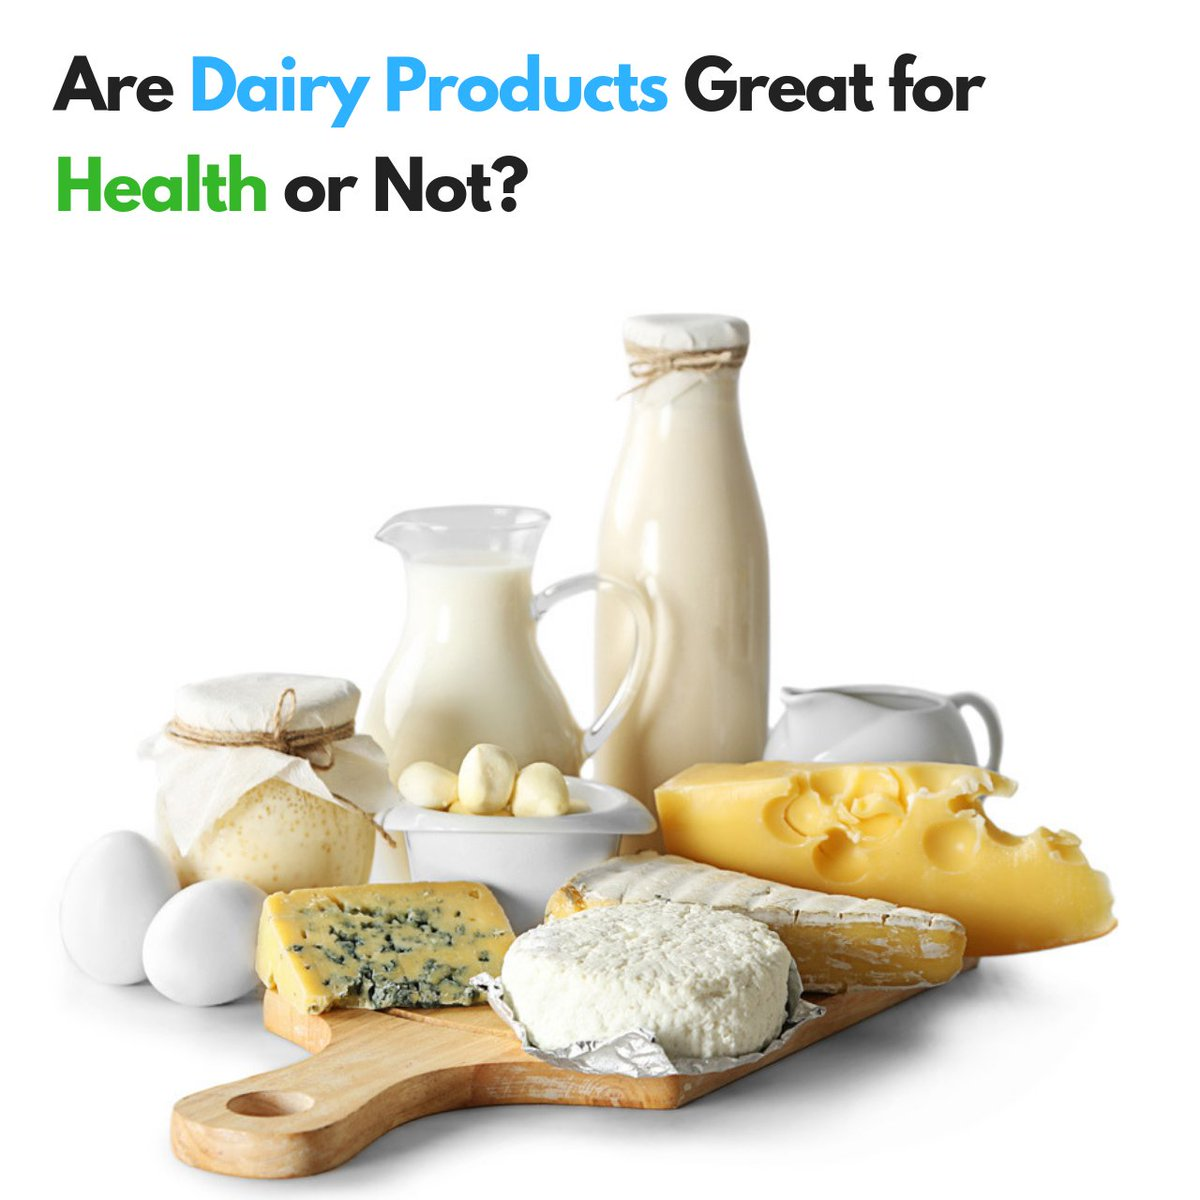 dairyproducts hashtag on Twitter